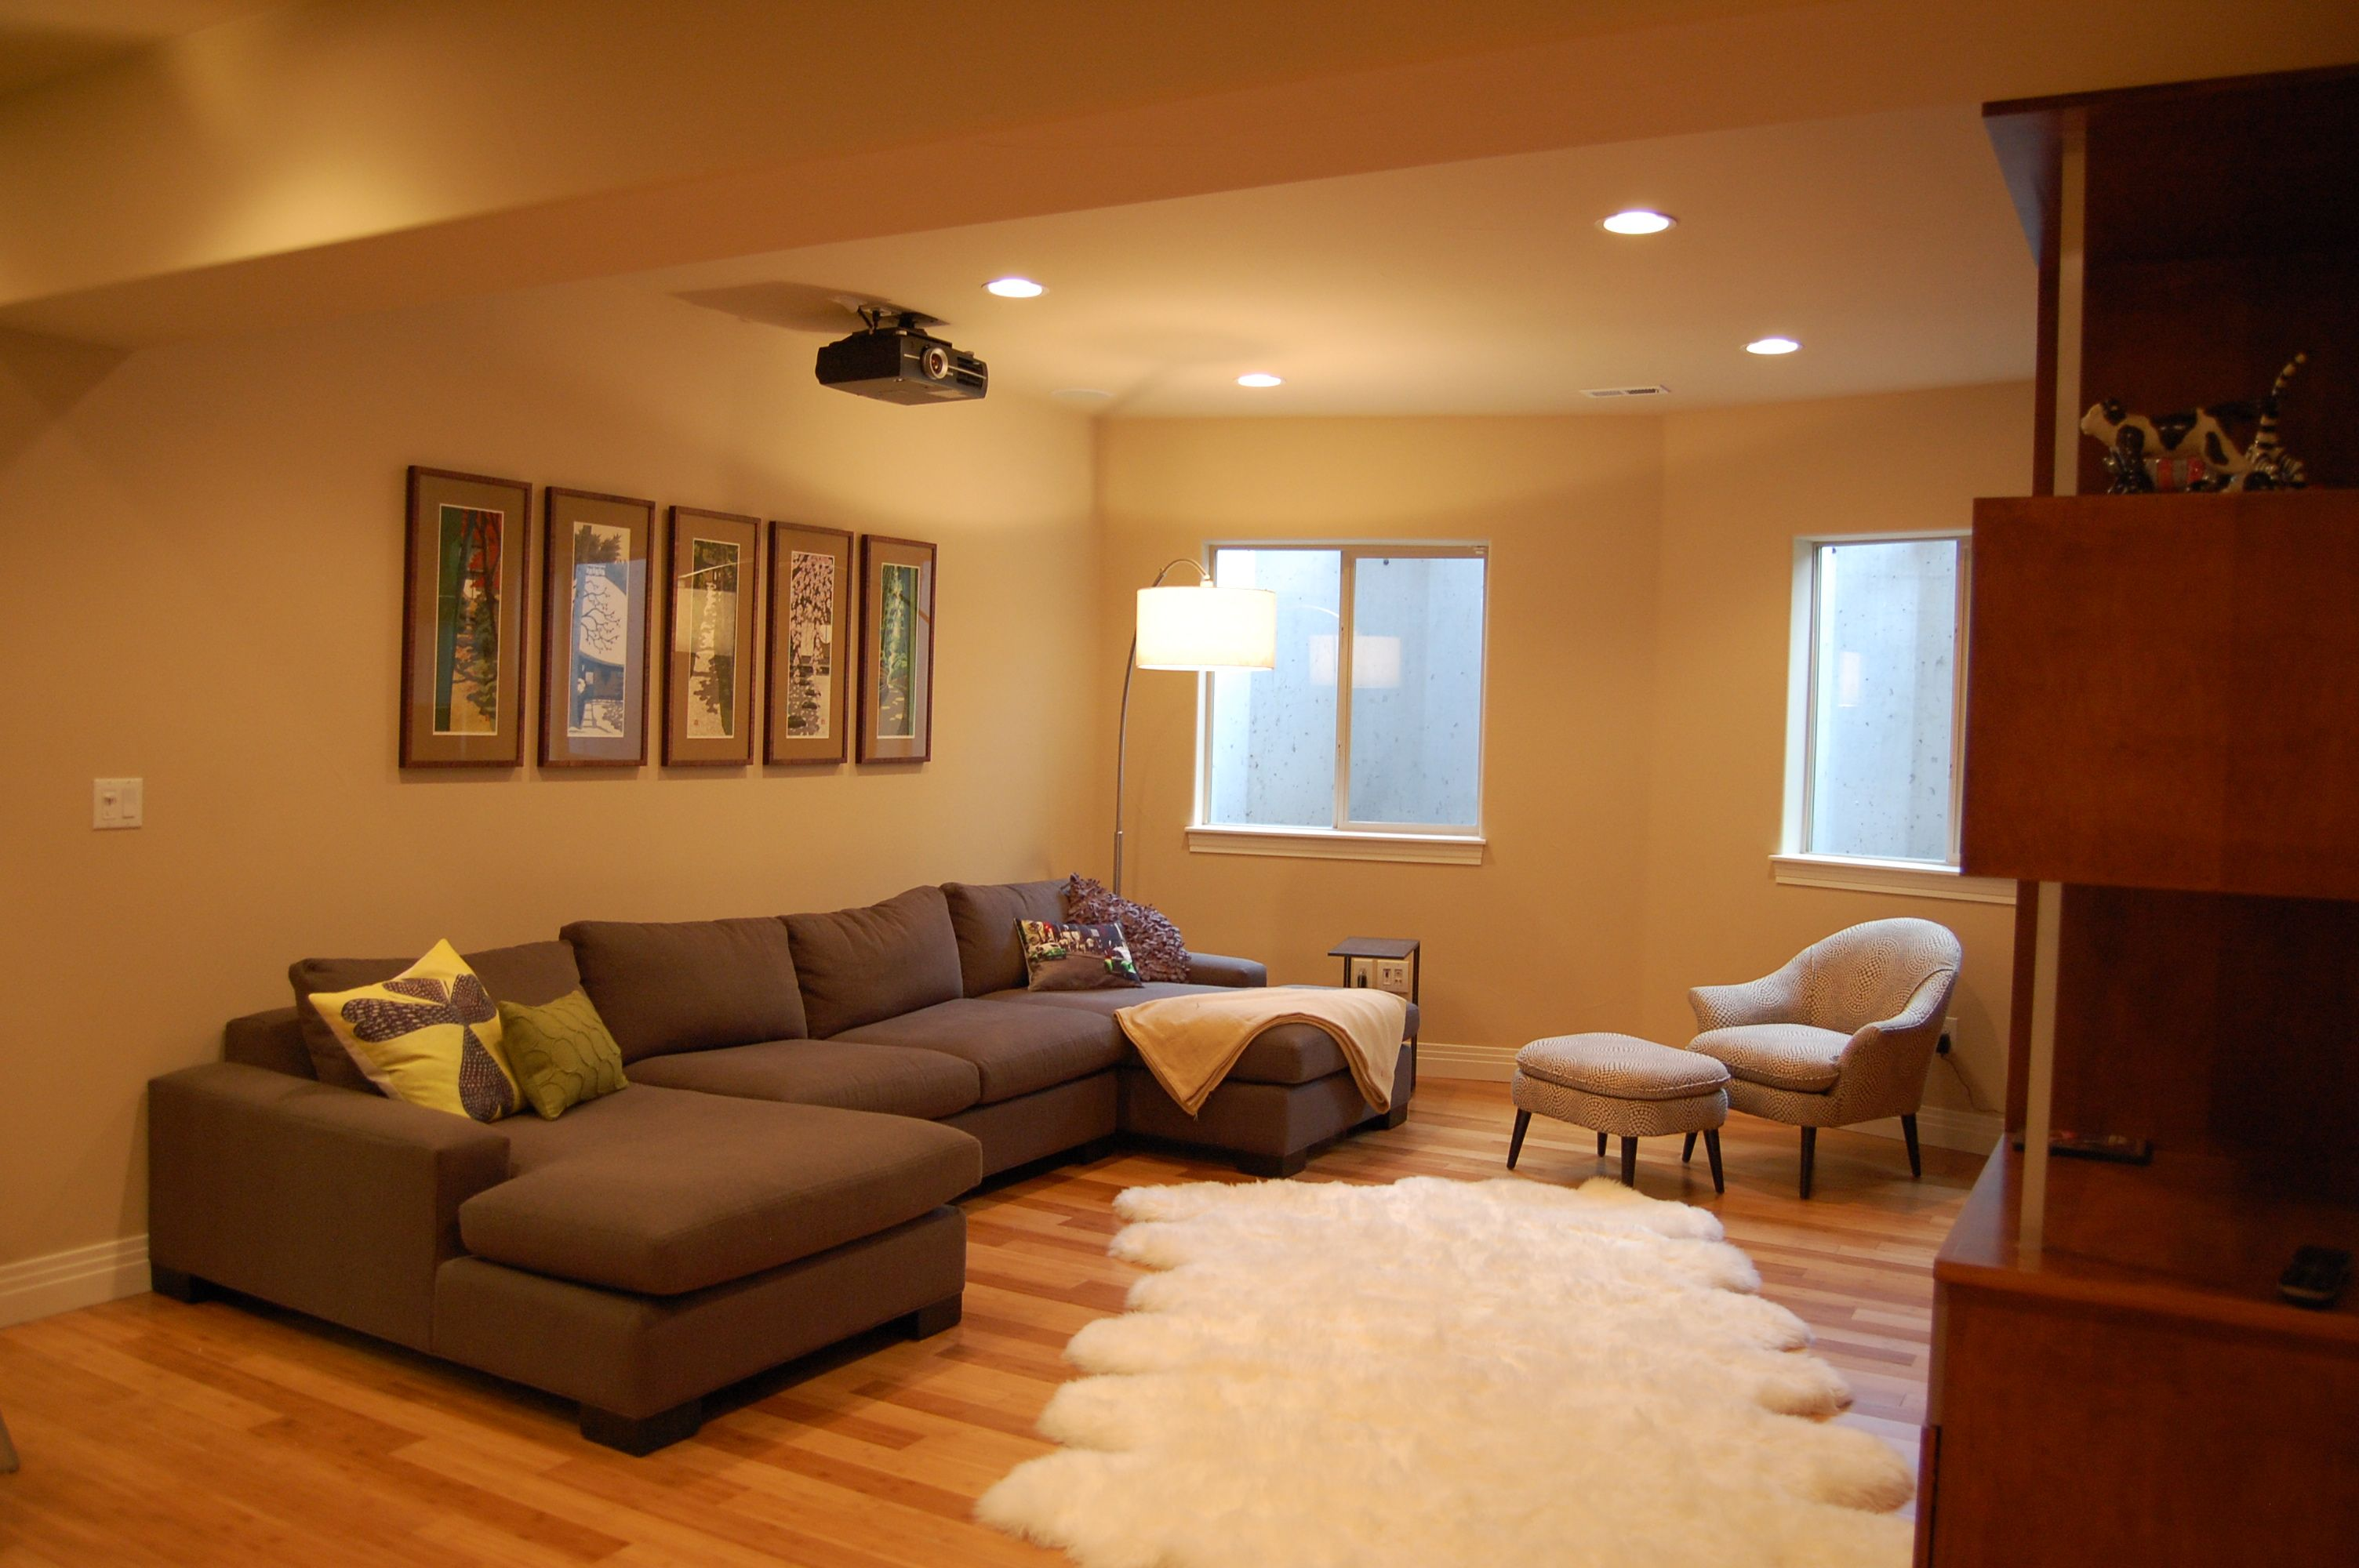 Interior Design Services Basement Design Stapleton Denver Colorado 3008 X  2000 Px